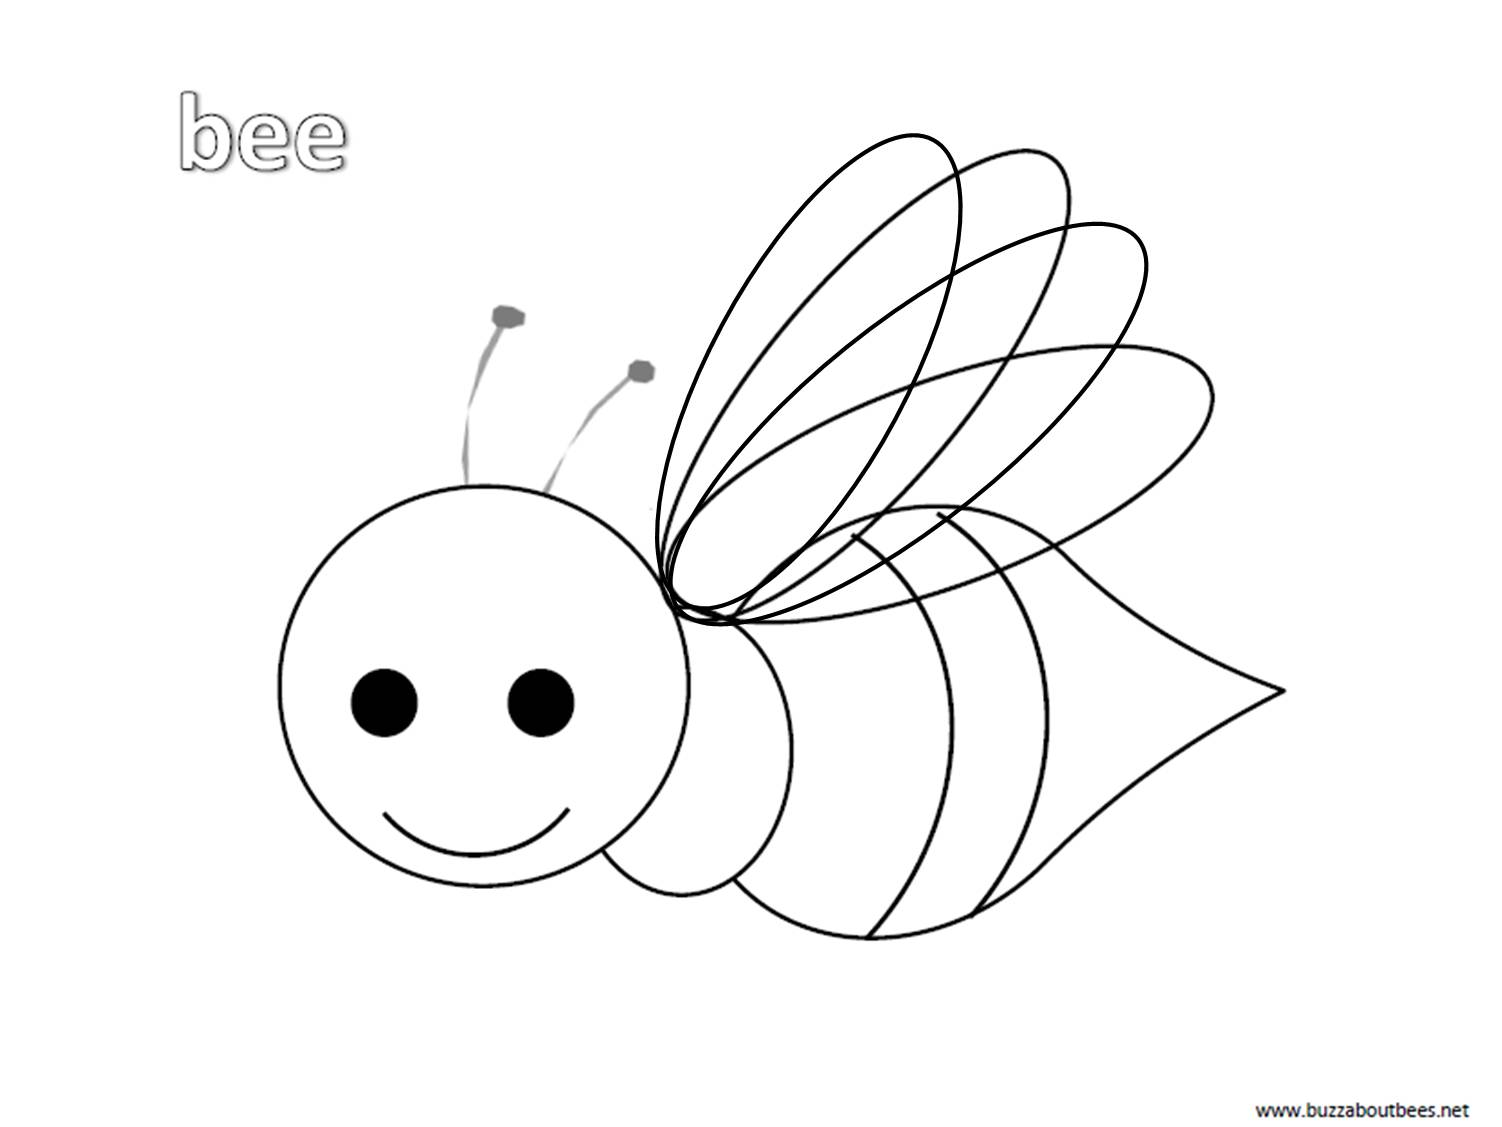 free bee coloring pages - photo#10